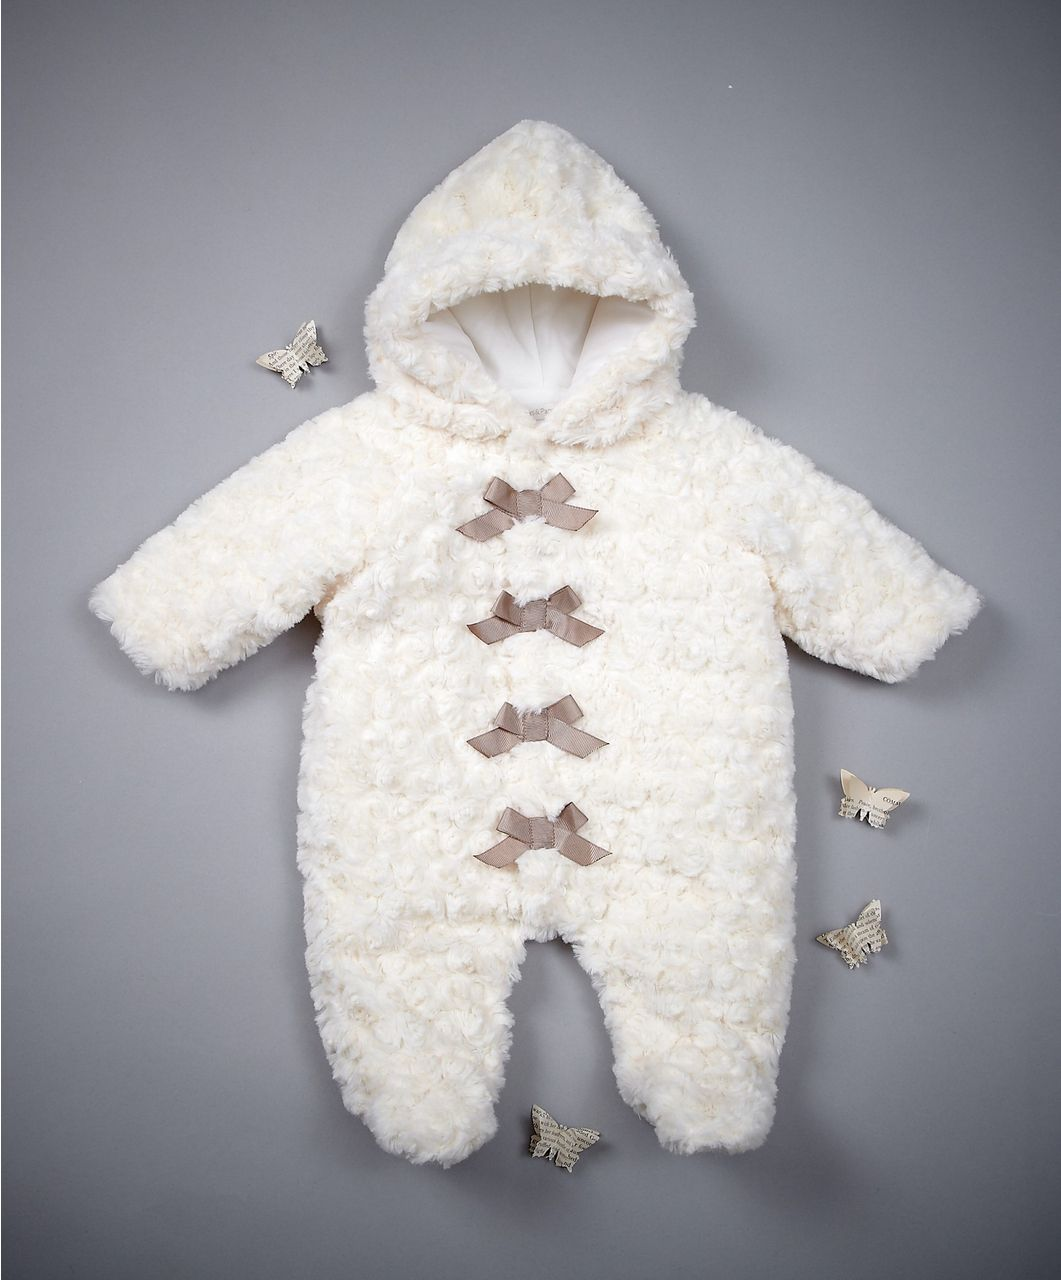 1c69559f0 Welcome to the World Fur Pramsuit - Pramsuits - Mamas   Papas